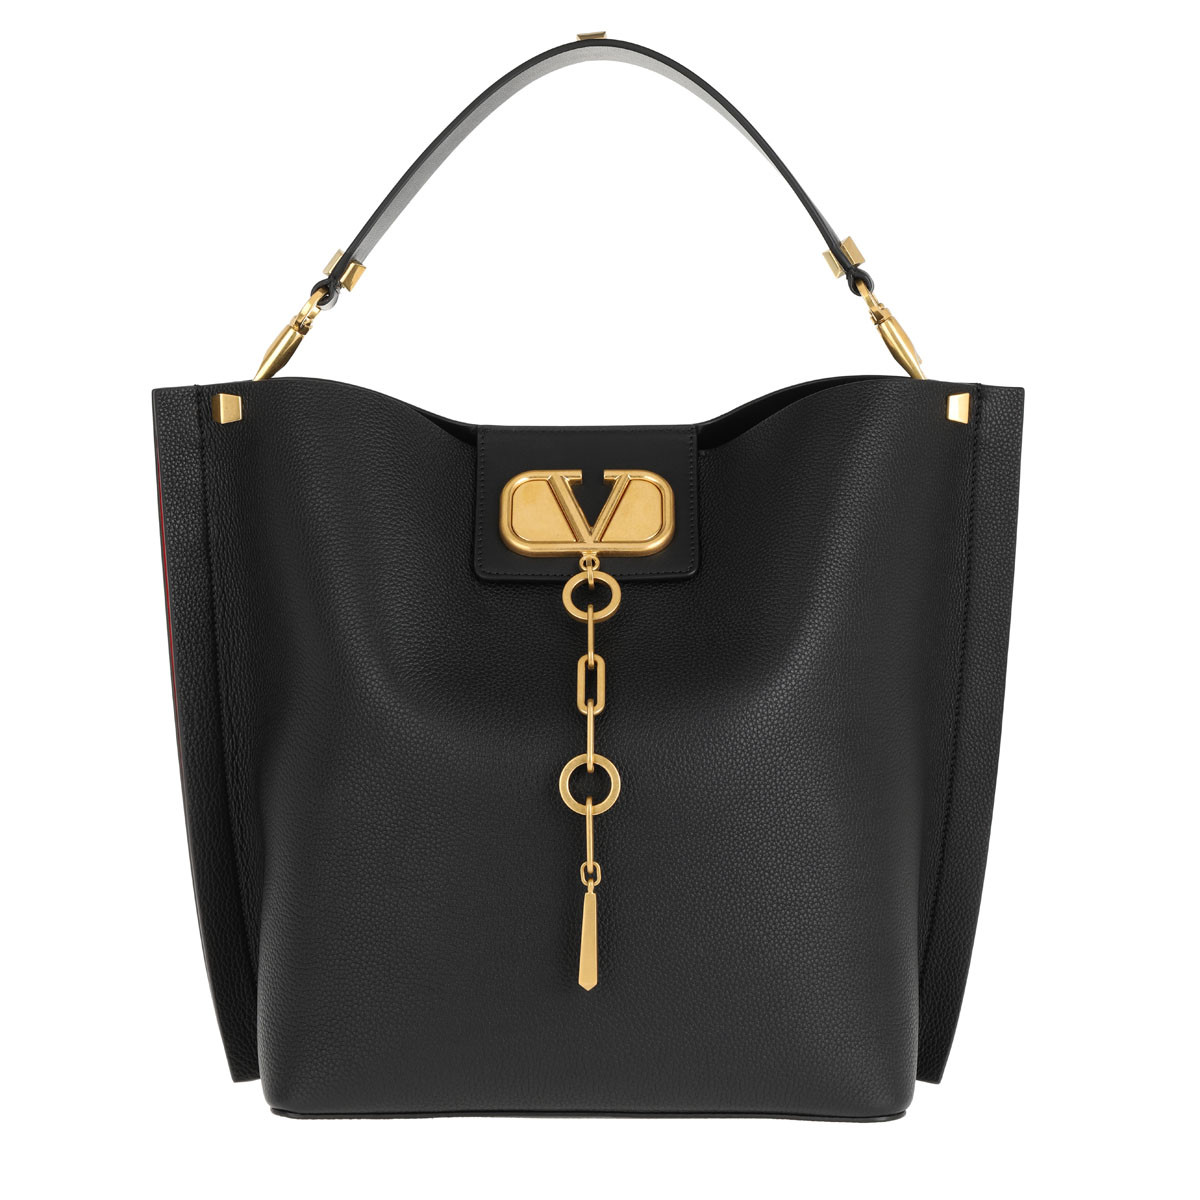 Valentino Beuteltasche - Valentino Bucket Bag Leather Black - in schwarz - für Damen